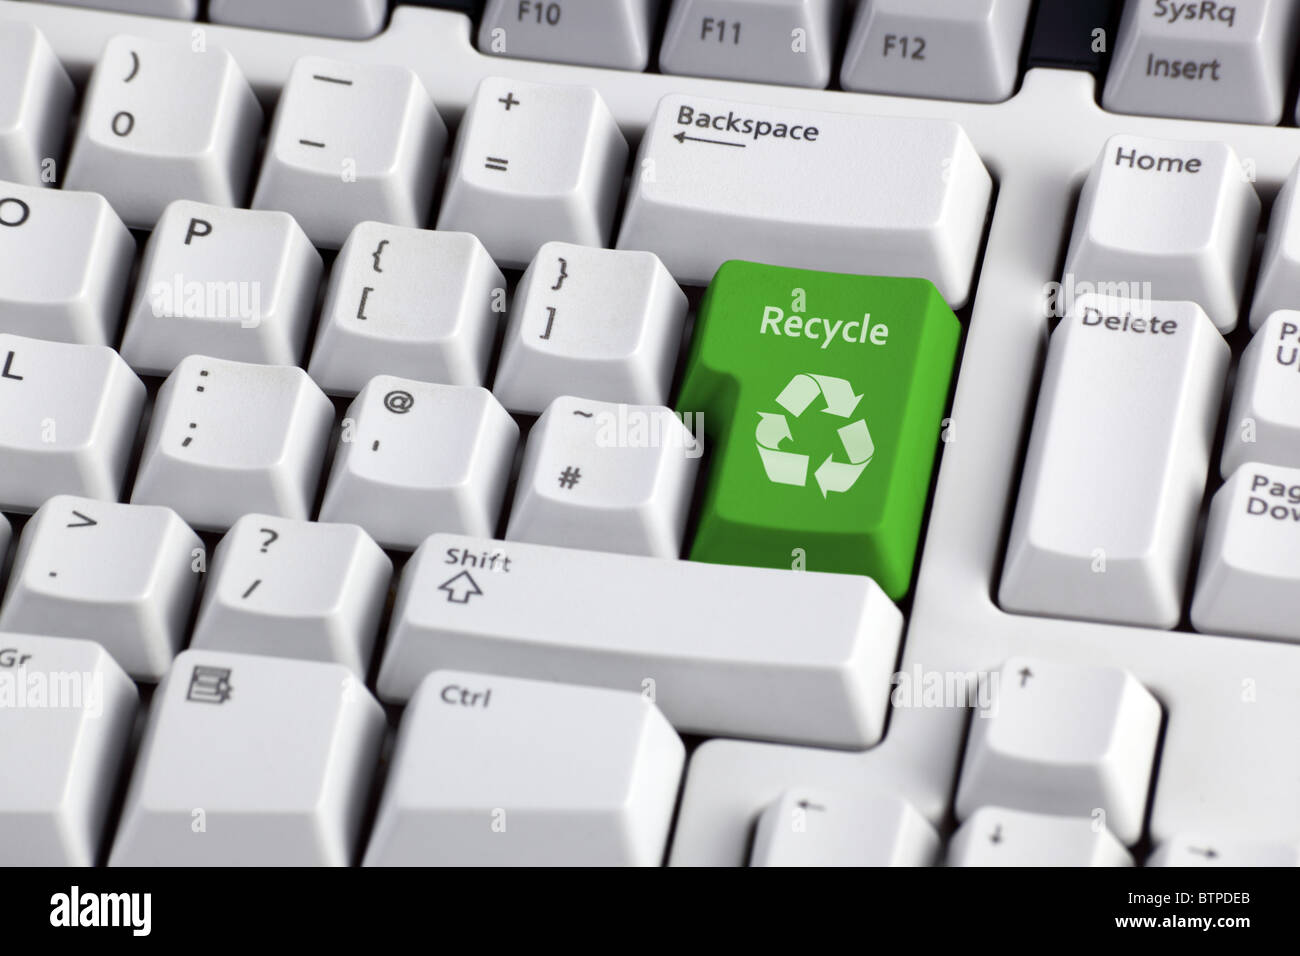 Recycling symbol on keyboard - Stock Image